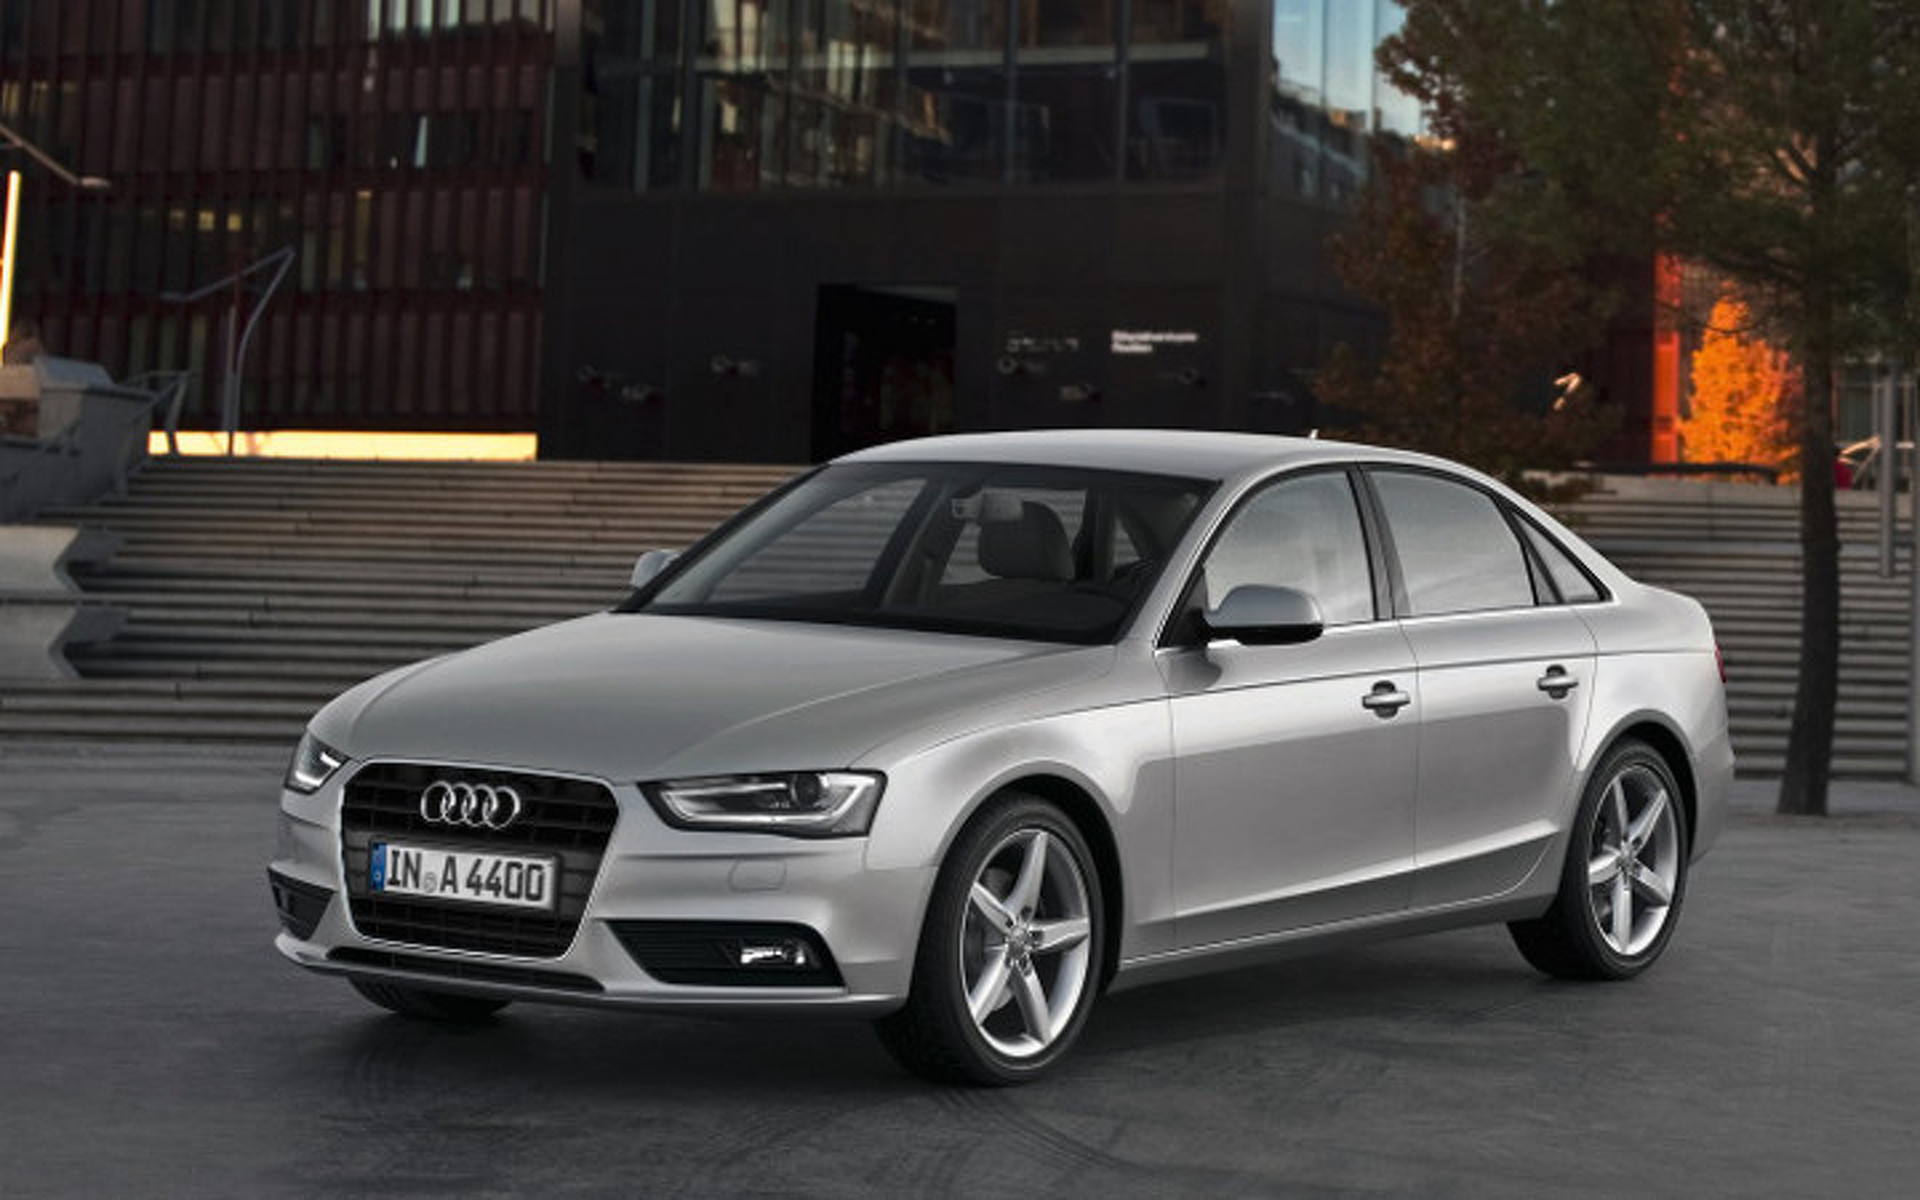 Audi Leads $28M Investment in This Rental Car Startup